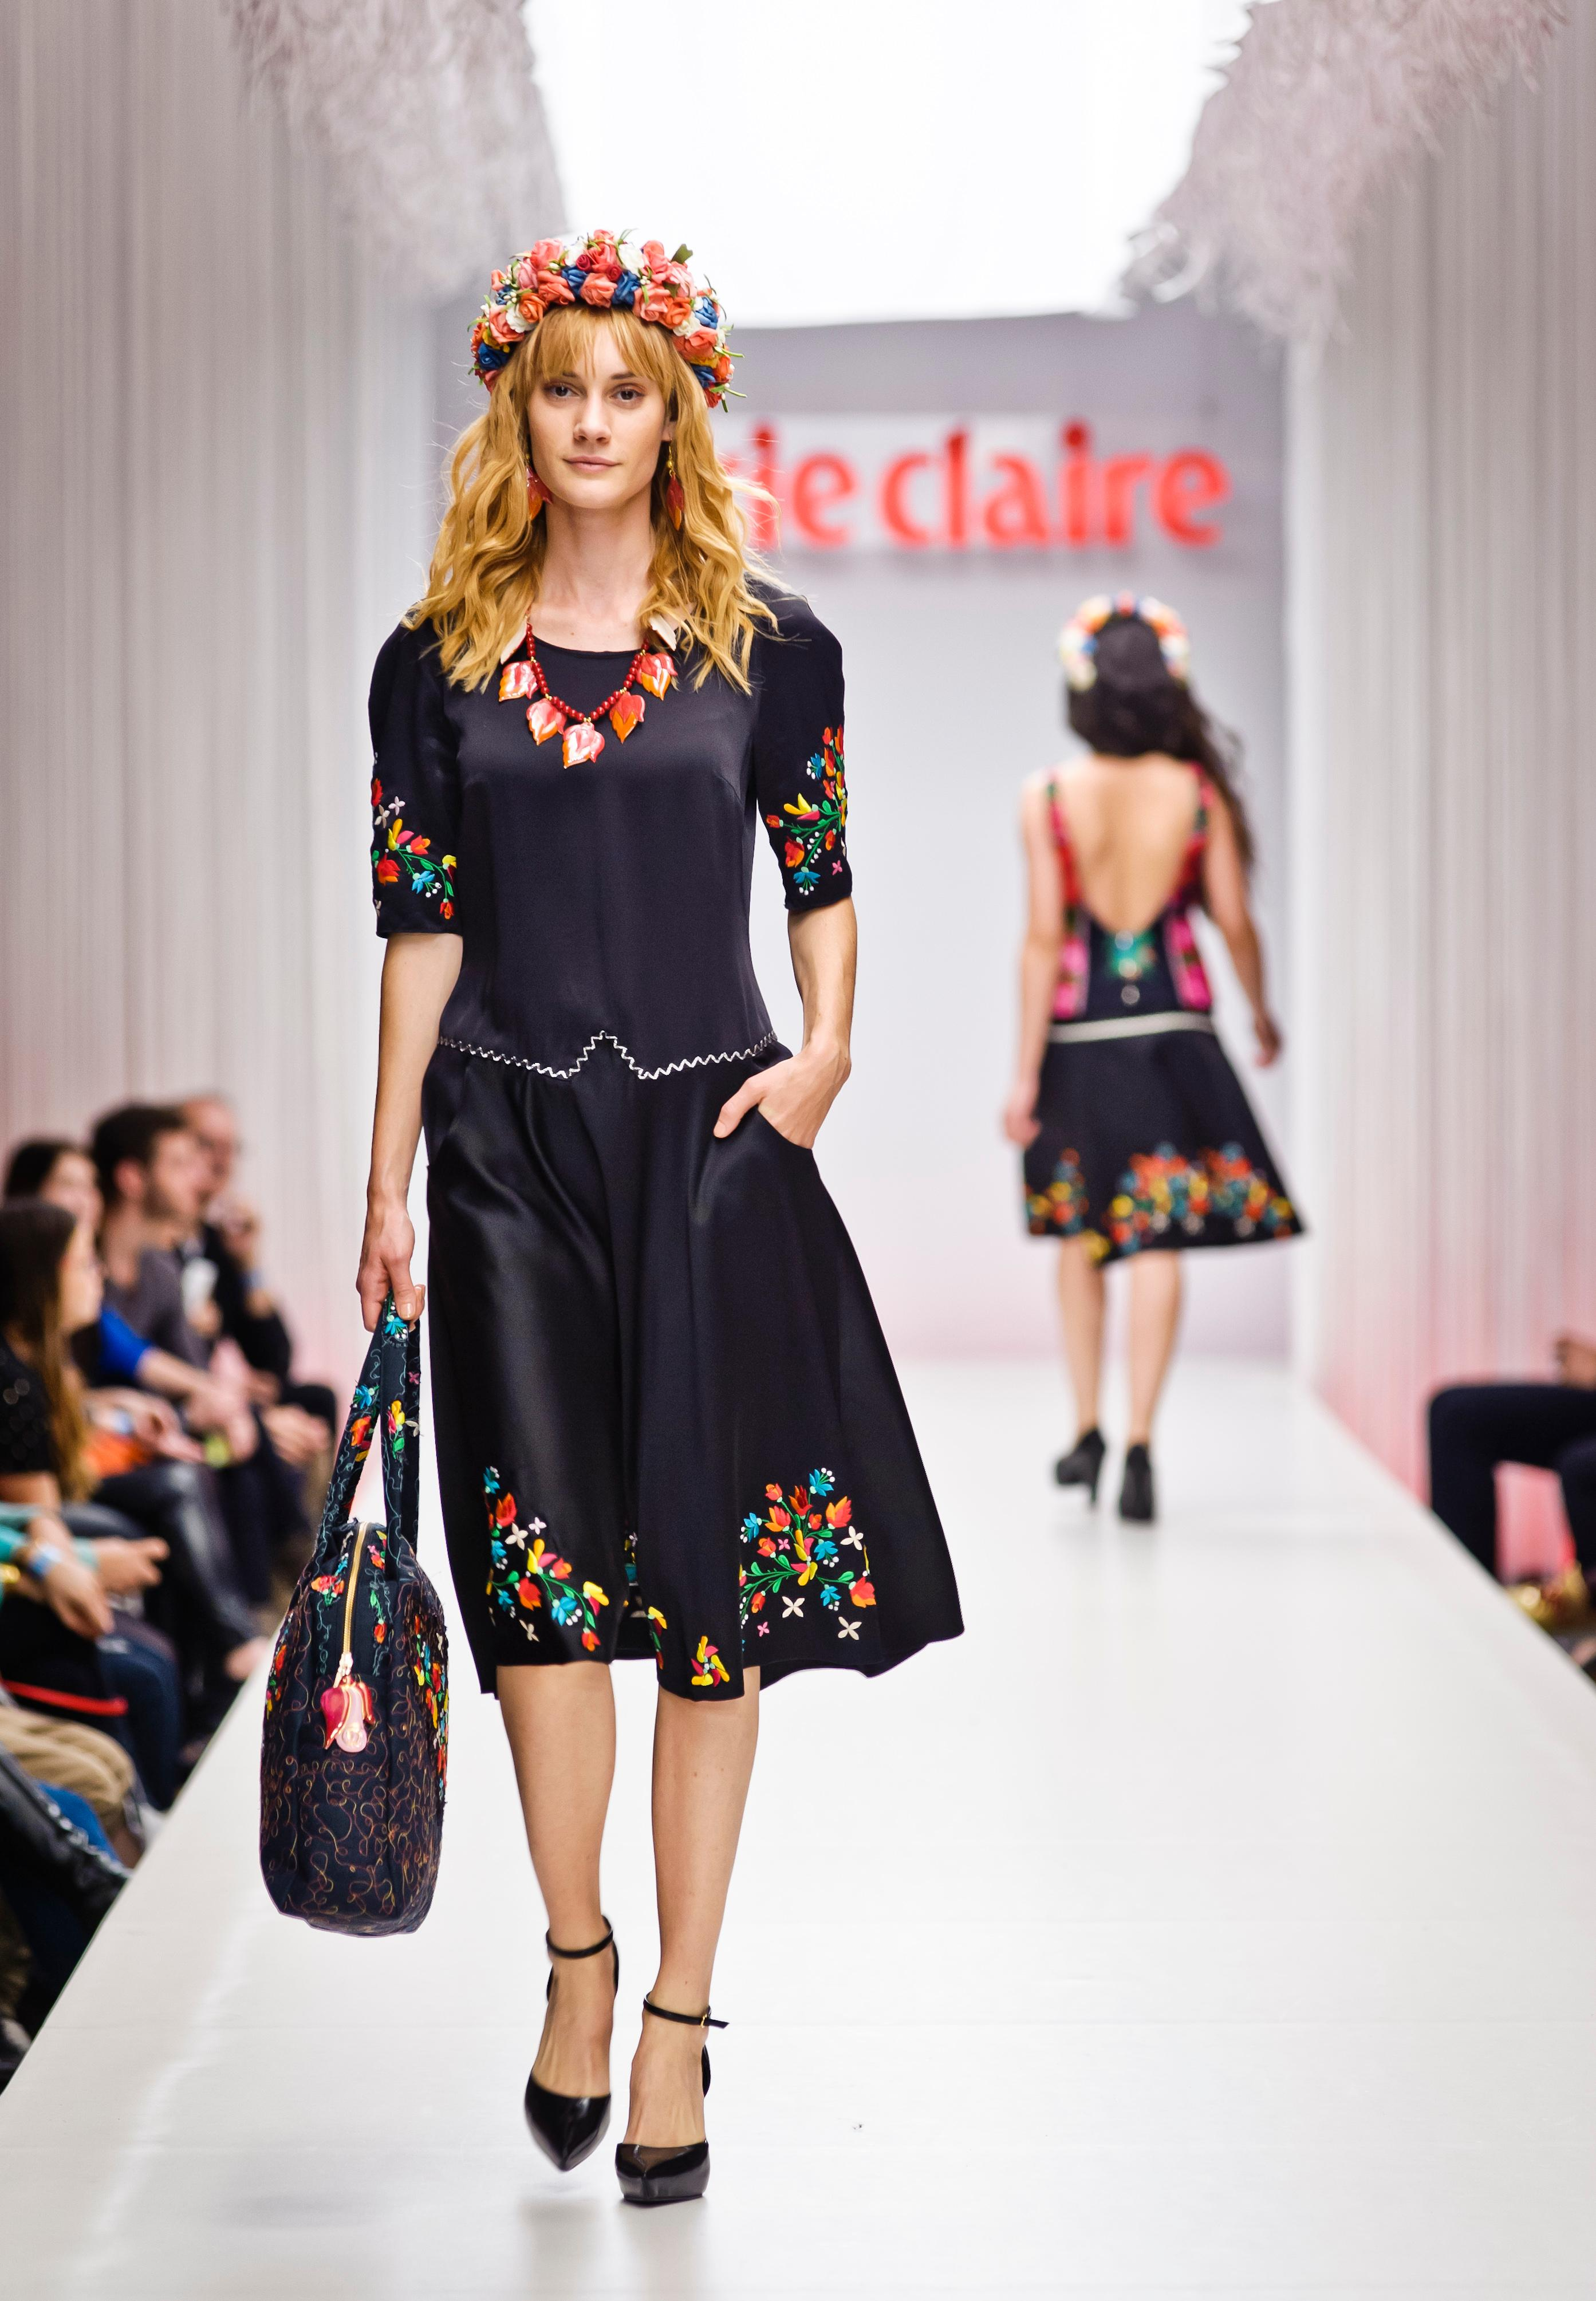 Social Enterprise Was Celebrated On Catwalk In Budapest